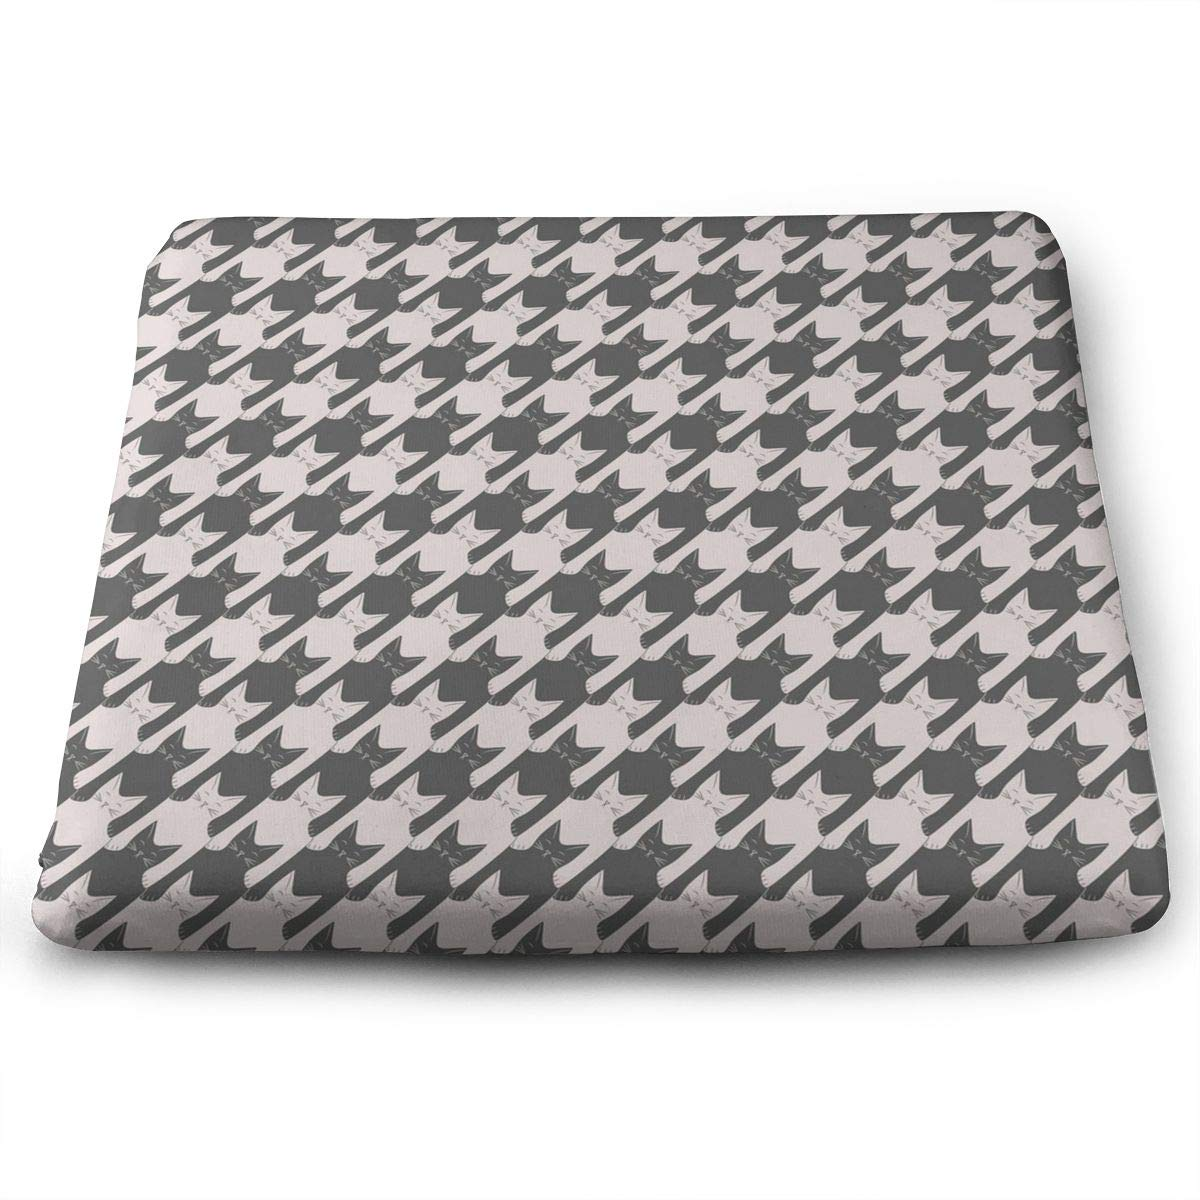 MODREACH Novelty Perfect Indoor Outdoor Square Seat Cushion - Cat Houndstooth Chair Pads Memory Foam Filled for Patio/Office/Kitchen/Desk/Travel/Kids/Yoga